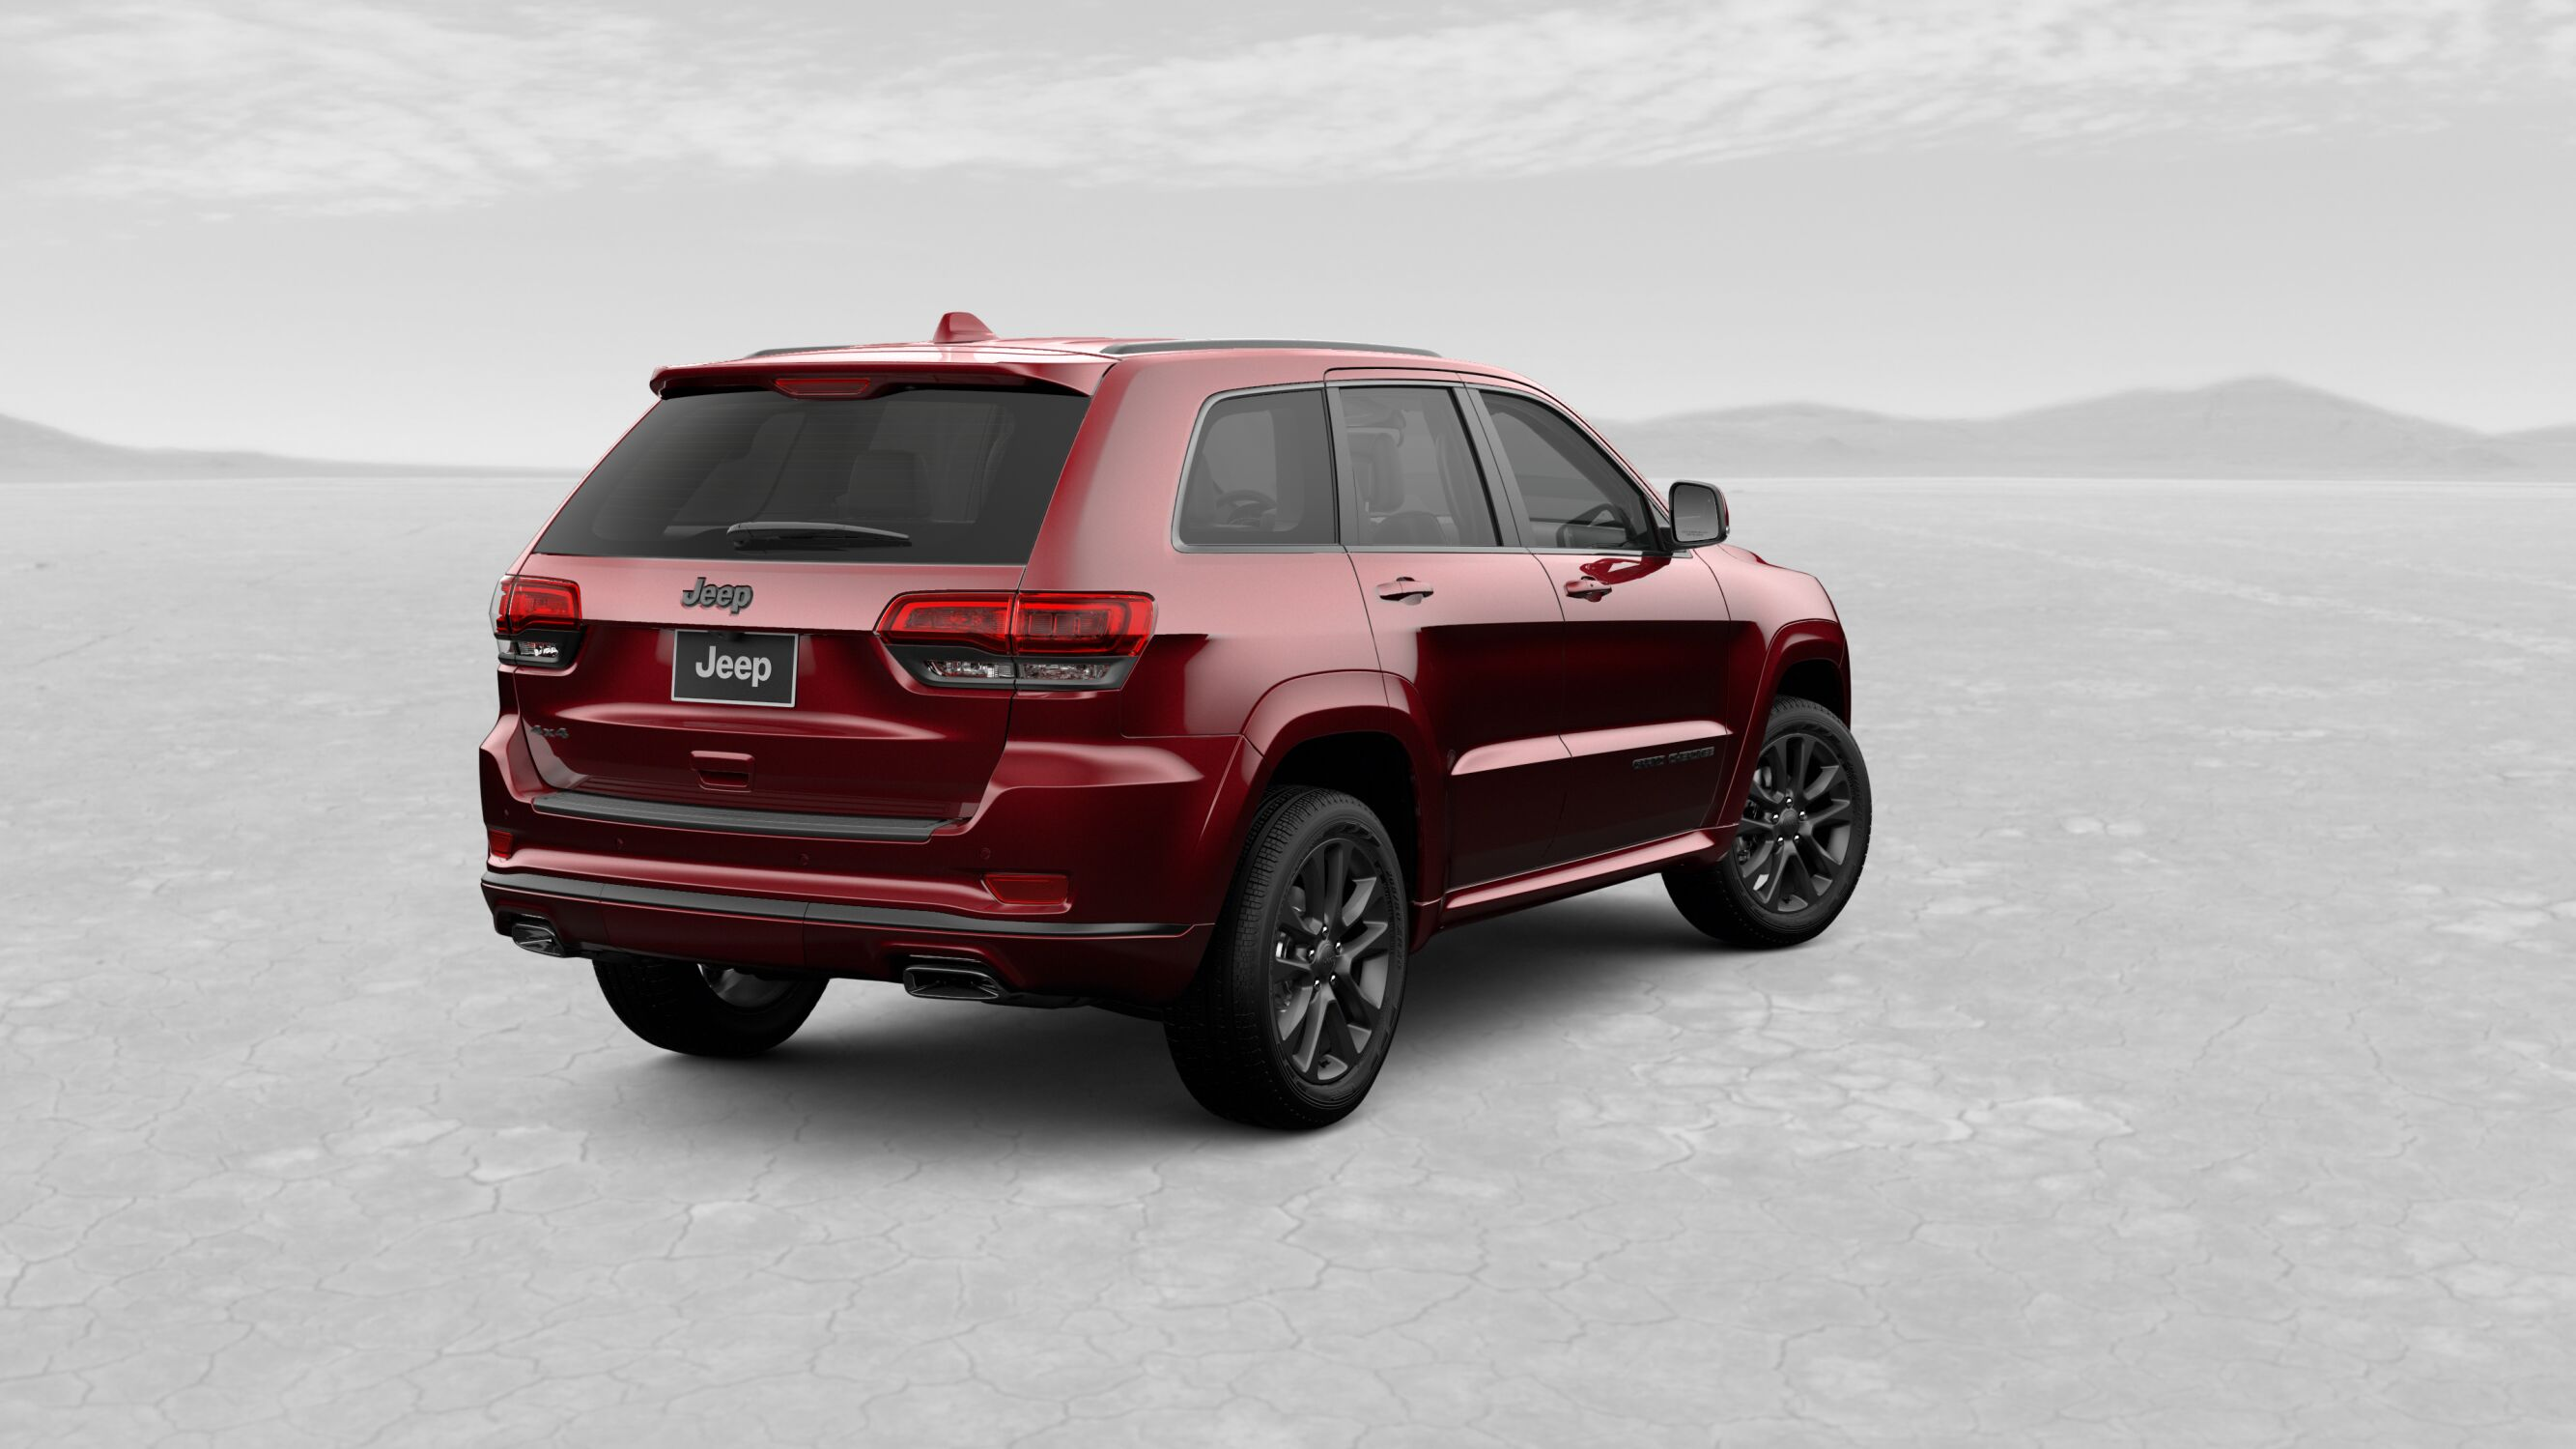 2019 Jeep Grand Cherokee High Altitude Red Exterior Rear View